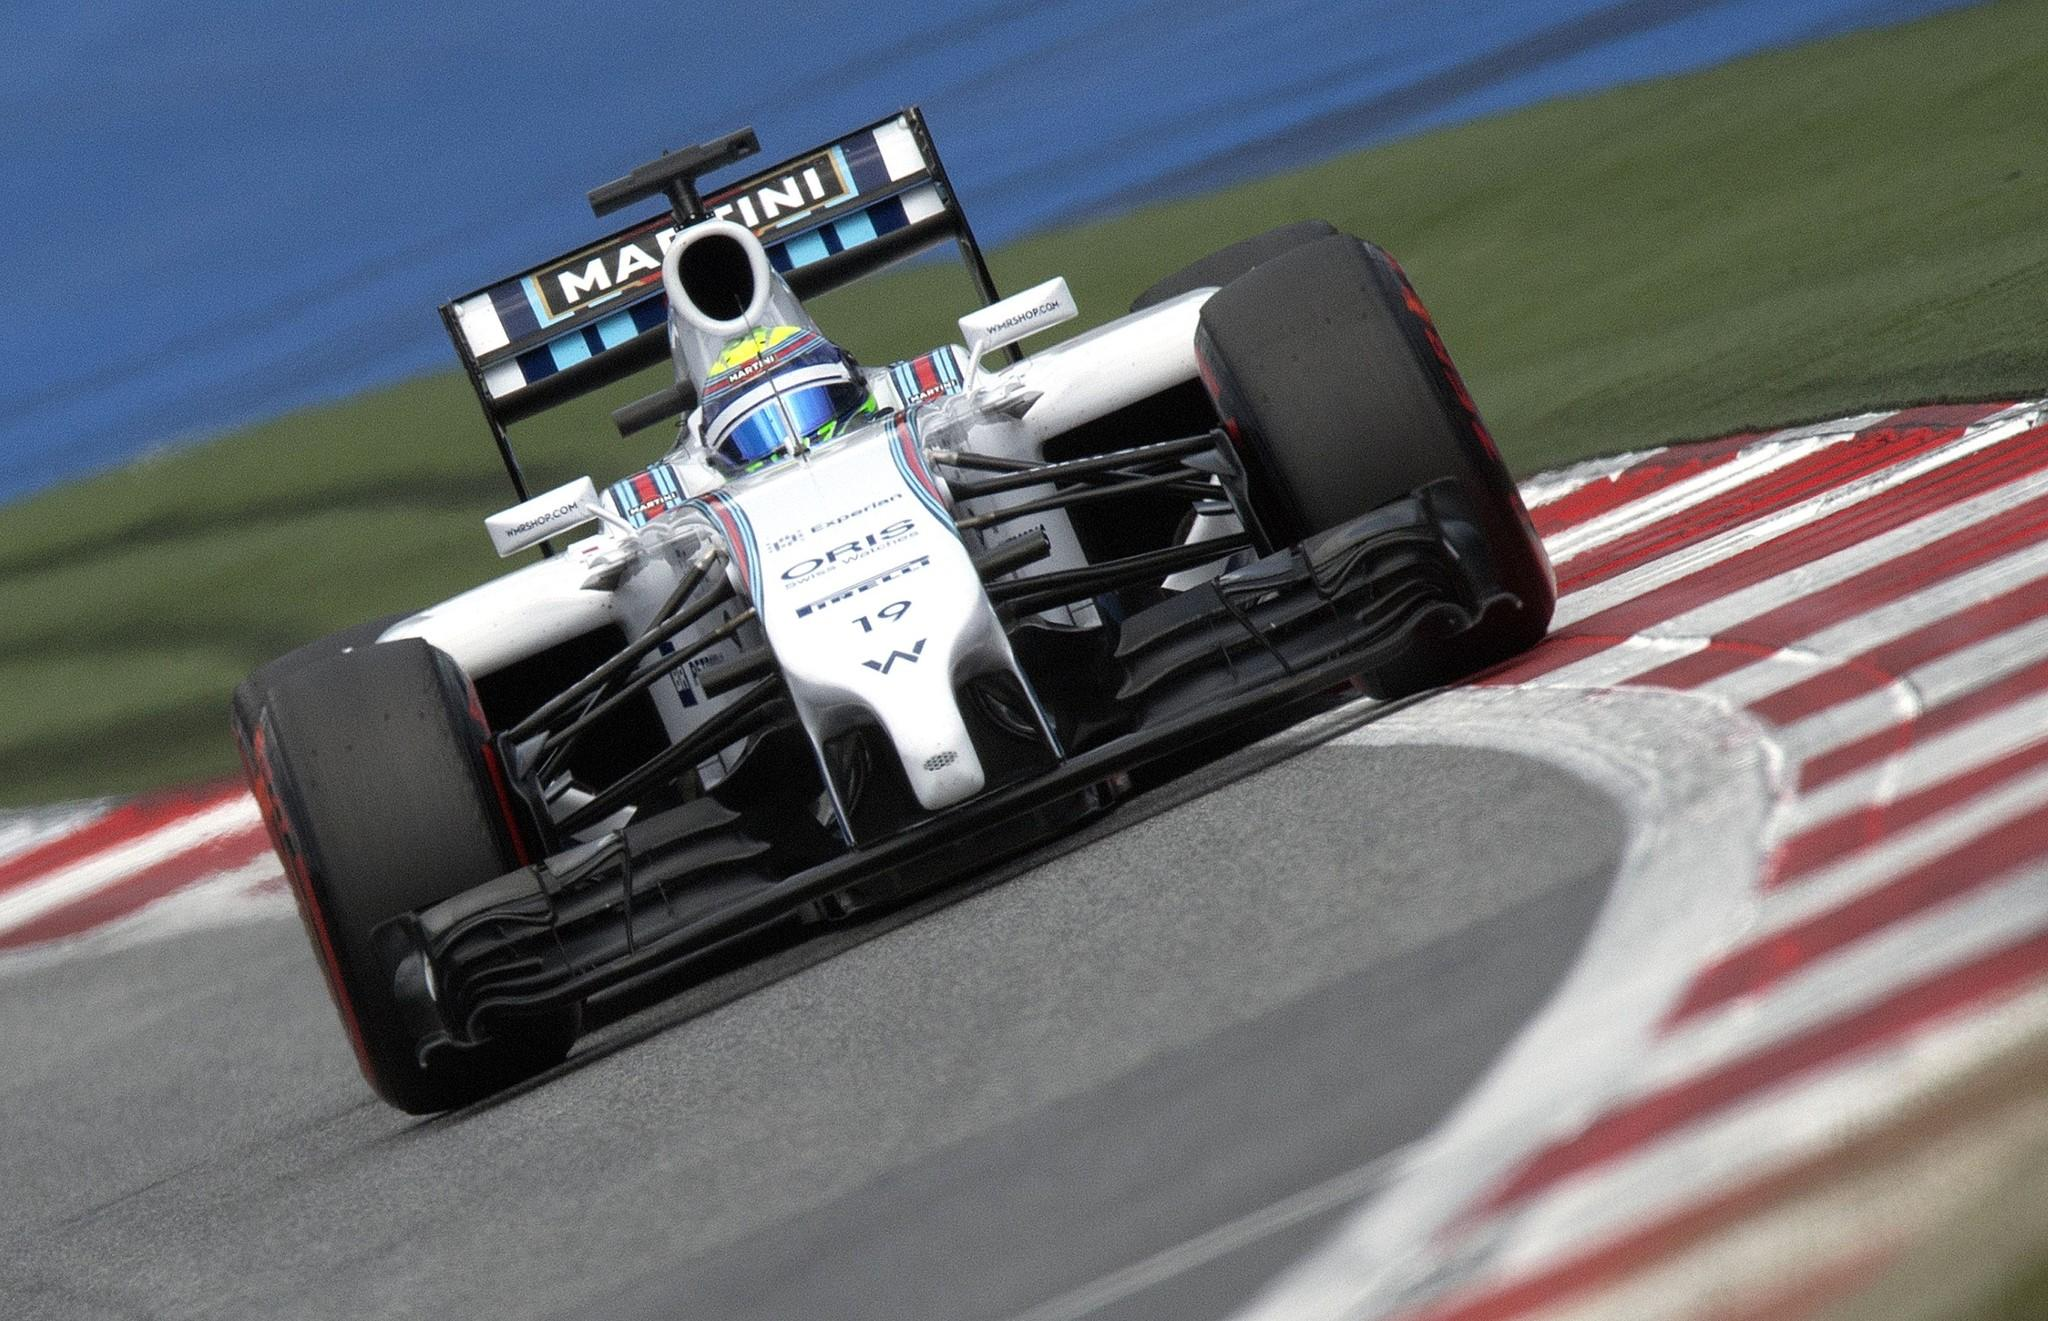 Williams' Brazilian driver Felipe Massa drives in the qualifying session of the Austrian Formula One Grand Prix at the Red Bull Ring in Spielberg, Austria on June 21, 2014.